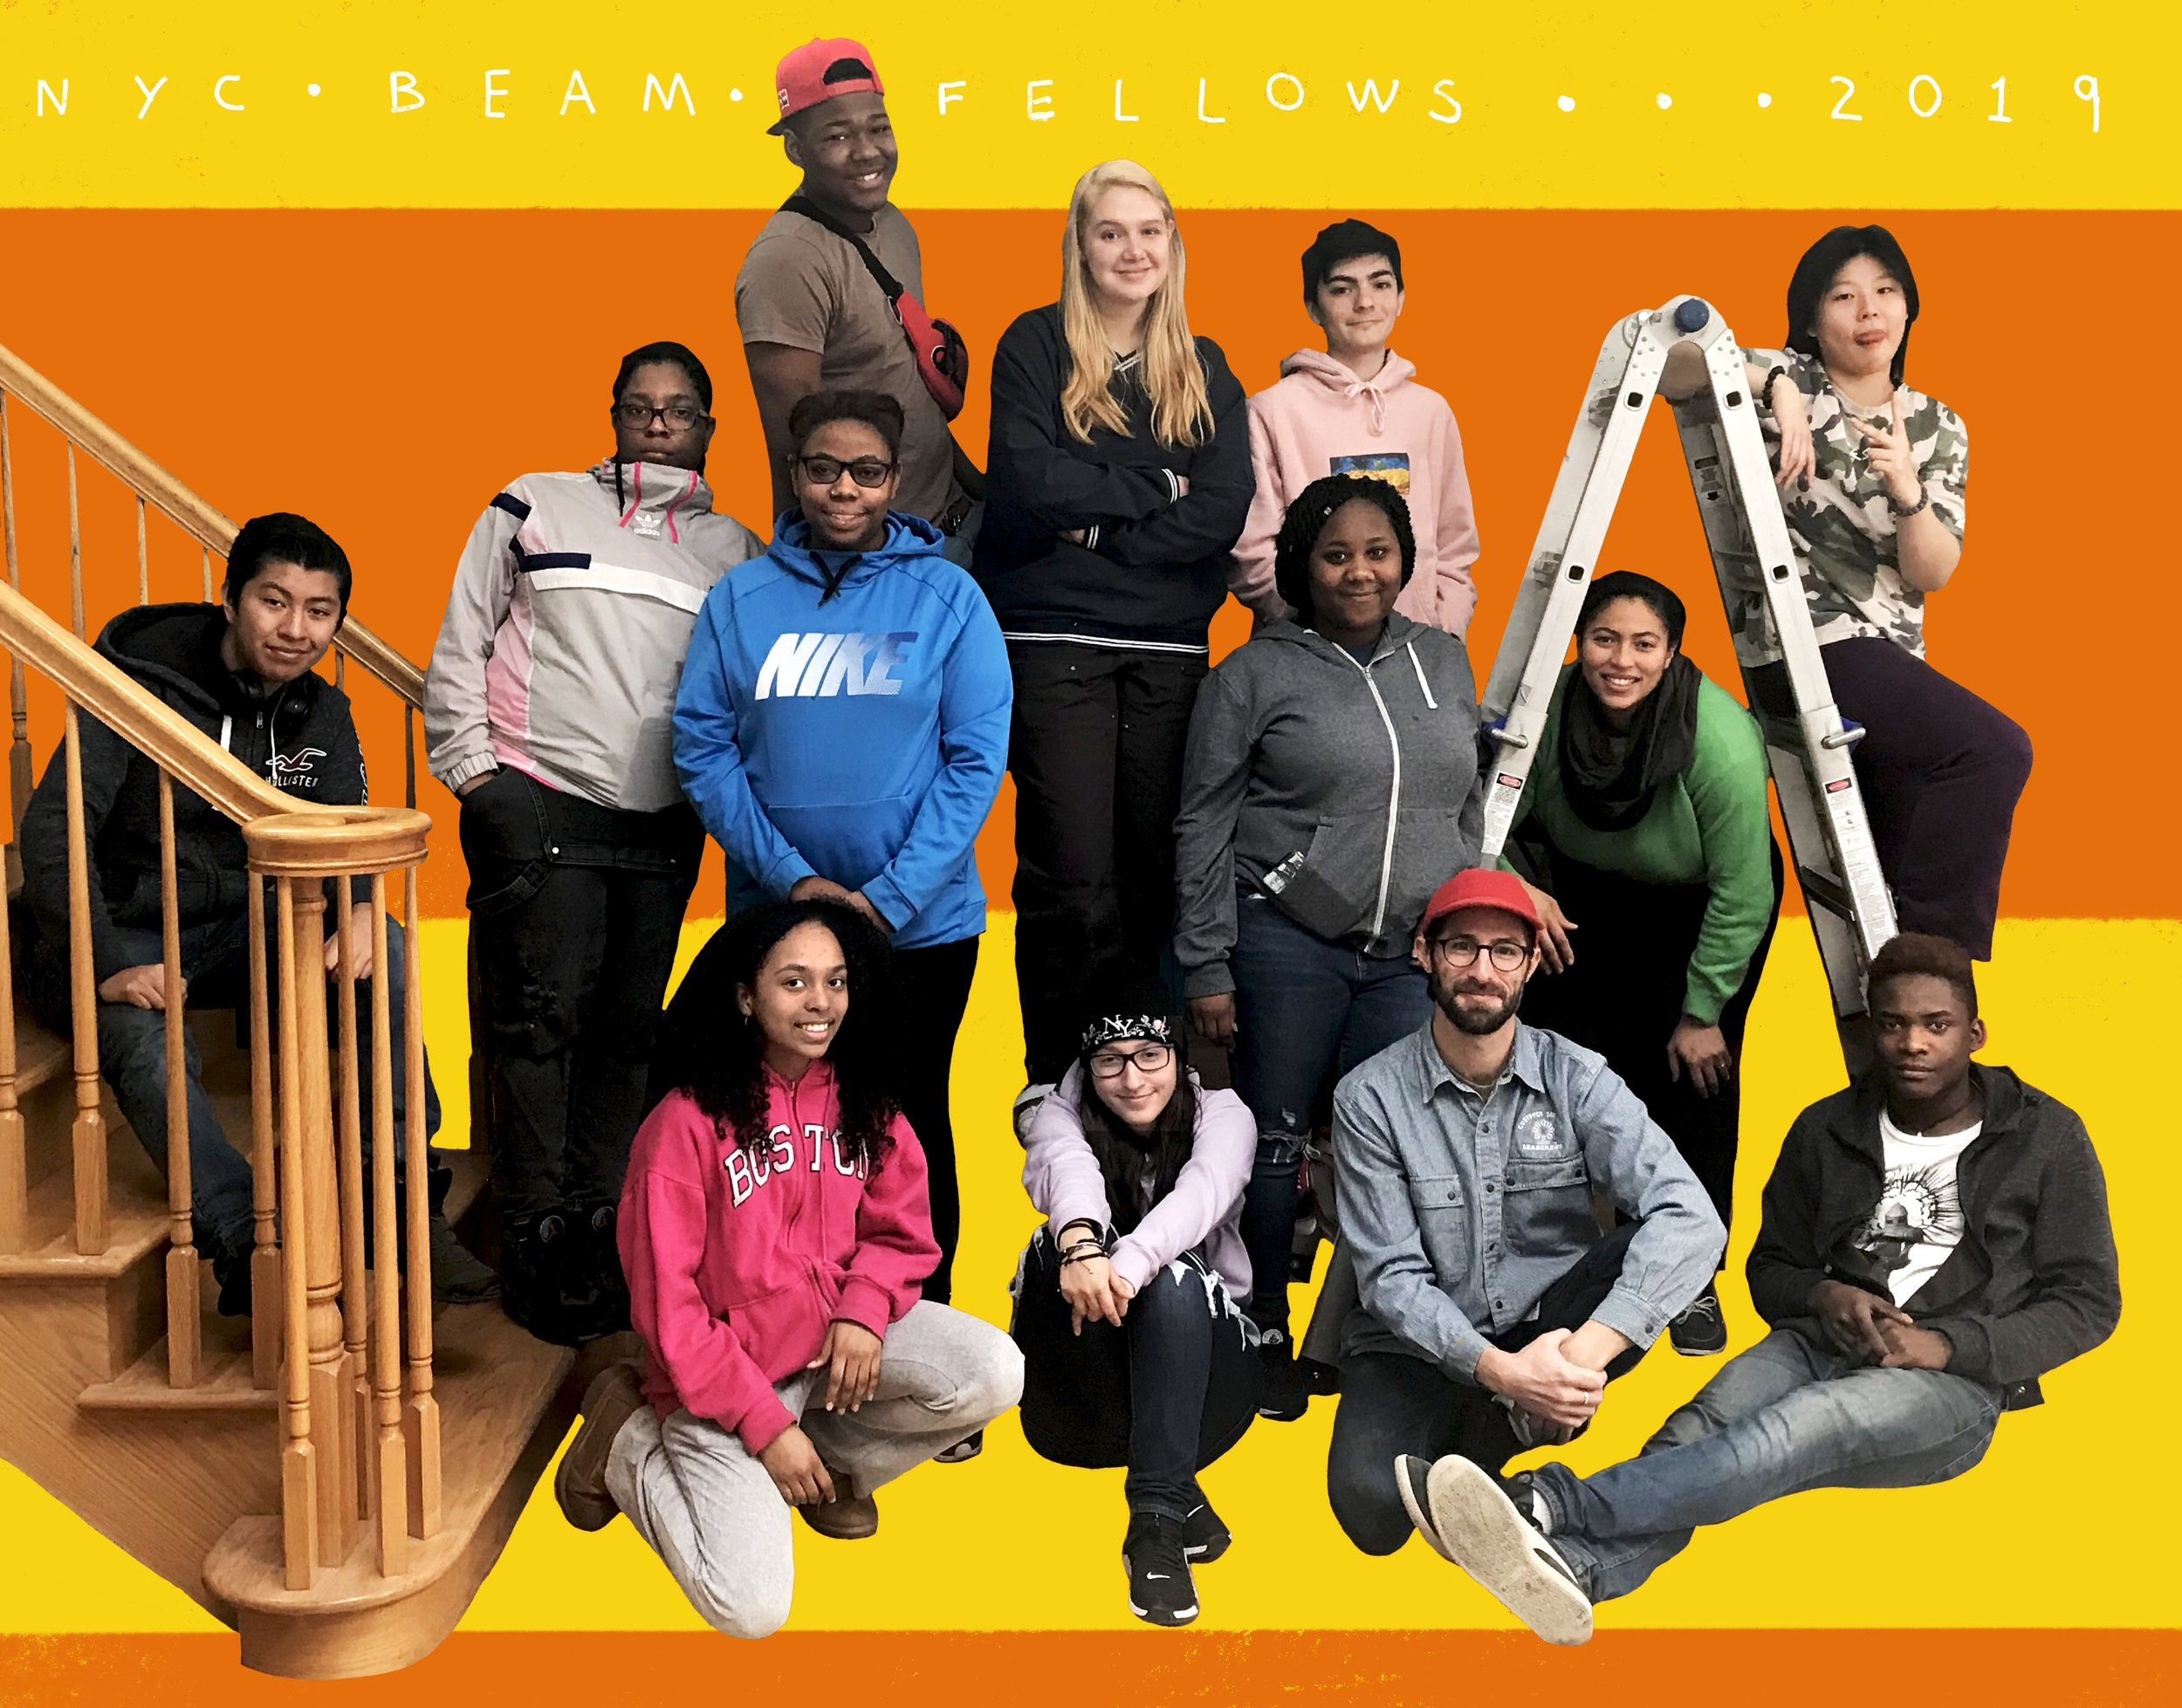 NYC Beam Fellows 2019: Katia Beegan, Valery Cuellar, Eli Harrell, Natasha Moore, Candace Nelson, Darwin Pichardo, Diego Romero, Ethan Rothschild, Christal Jean-Soverall, Lucas Stettner, Dyani Woodson, Jade Ziyi Zhao (not all pictured)  Beam Project Staff: Mitchell Dose, Cassie Broadus-Foote & Philip Gabbana  Designer: Chee-Kit Lai (Mobile Studio Architects, London)  Illustration Artist: Ebony Bolt  Photo and Creative Credits: David Golann & Tim Fite